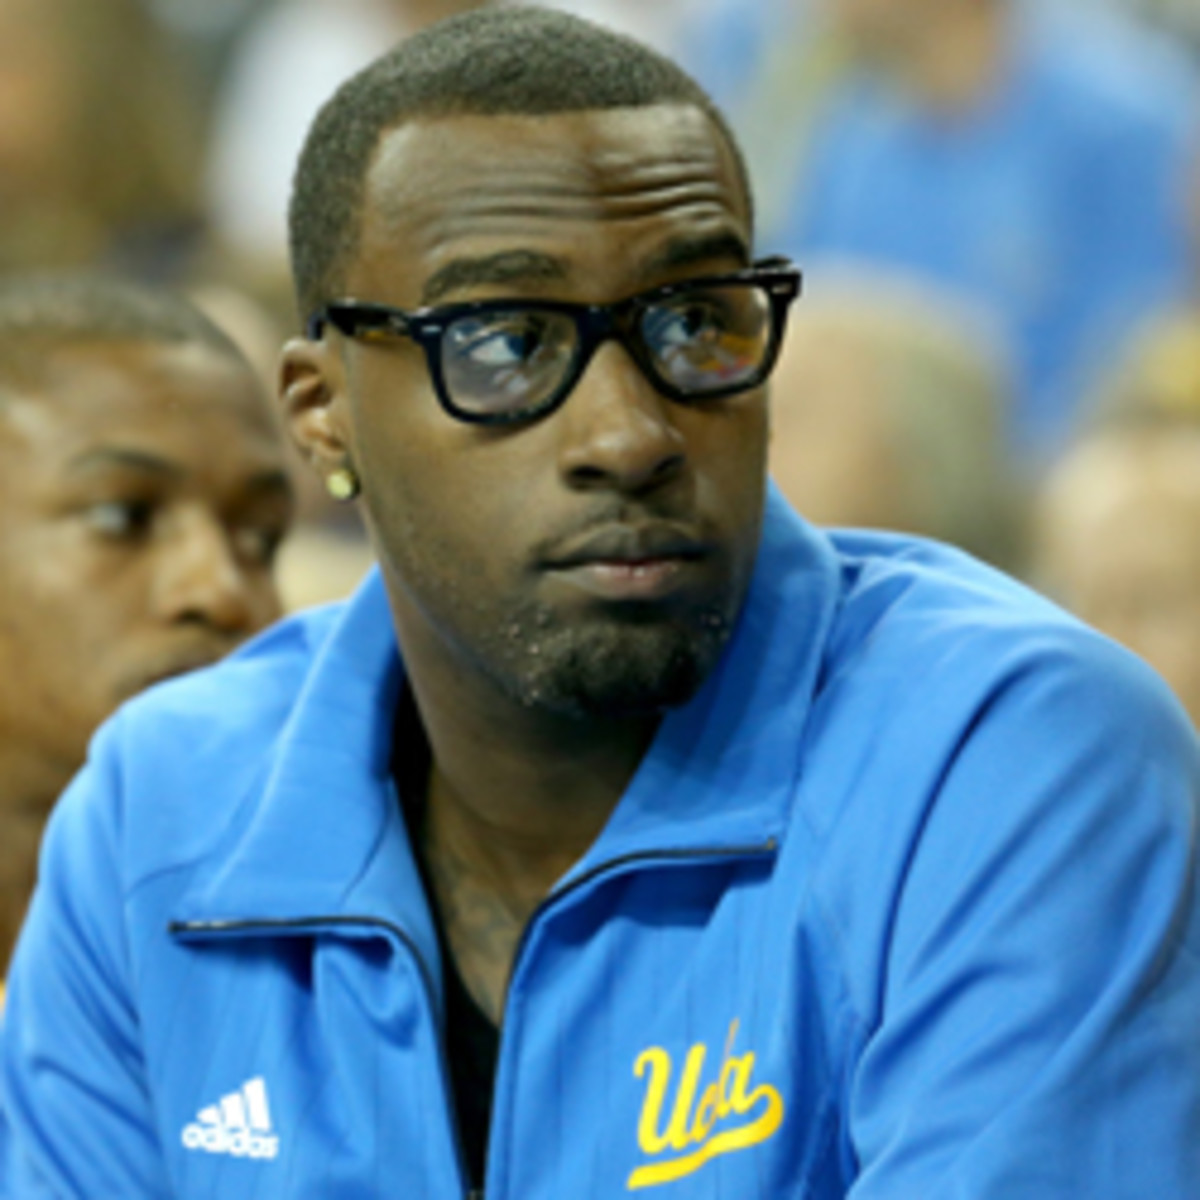 UCLA Shabazz Muhammad is actually 20 years ago, not 19 as it states in the team's media guide. (Stephen Dunn/Getty Images)